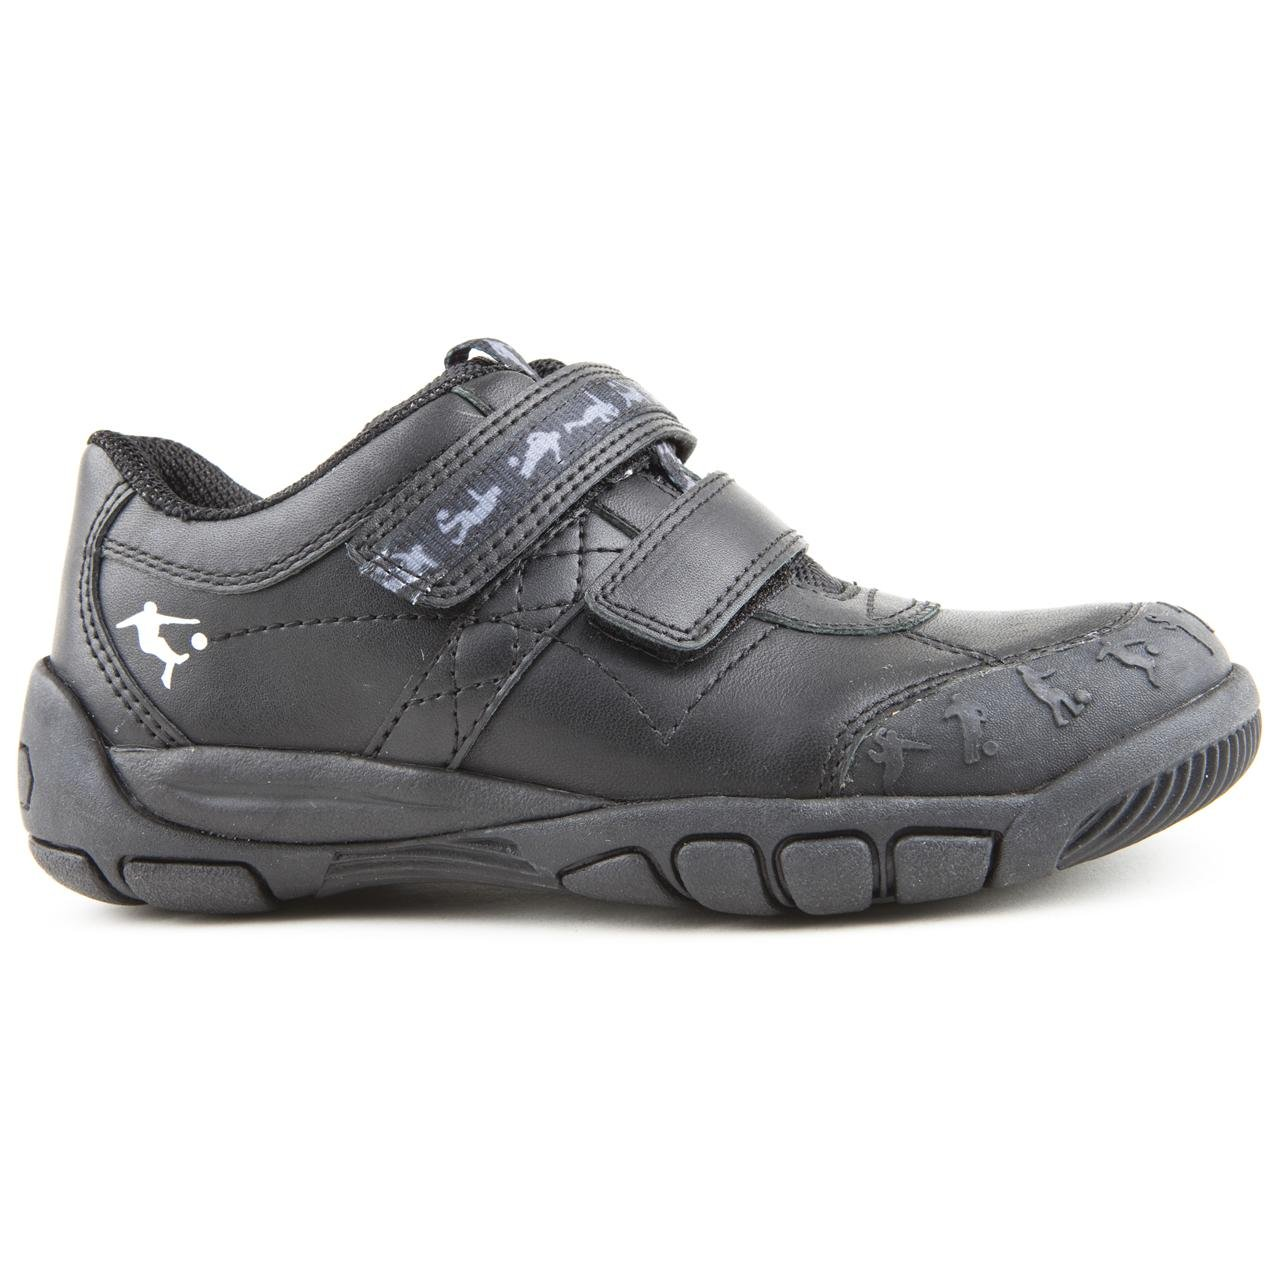 7fd1a9854acd3 Boy Junior Start-Rite Hat Trick G Black Touch Fastening Shoes Size 1:  Amazon.co.uk: Shoes & Bags